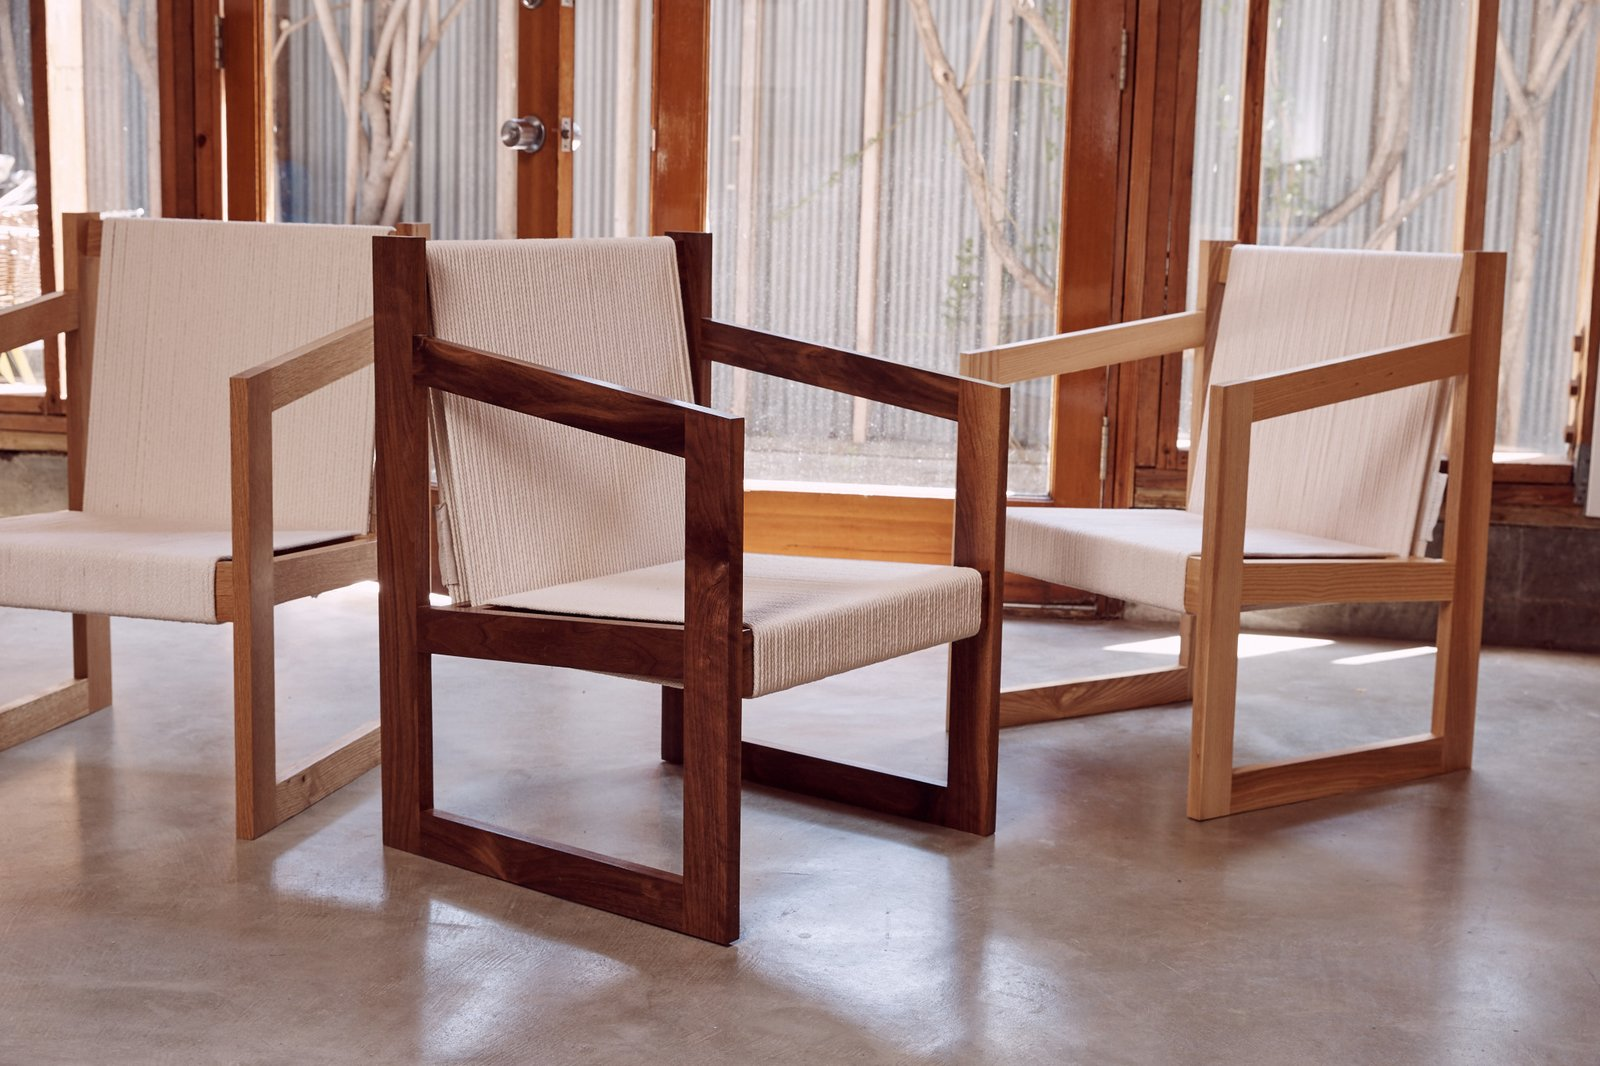 The Chair No. 2 by Dust to Dust is based on designer Kristin Grant Fowler's experience in boatbuilding. The chairs are available in oak, walnut, and ash with mortise-and-tenon joints; 500 feet of rope comprise the seat and back. A dark shou-sugi-ban version, not pictured, is also available.  Photo 9 of 12 in Peek Inside the Frank Gehry Rental of an Emerging L.A. Furniture Designer